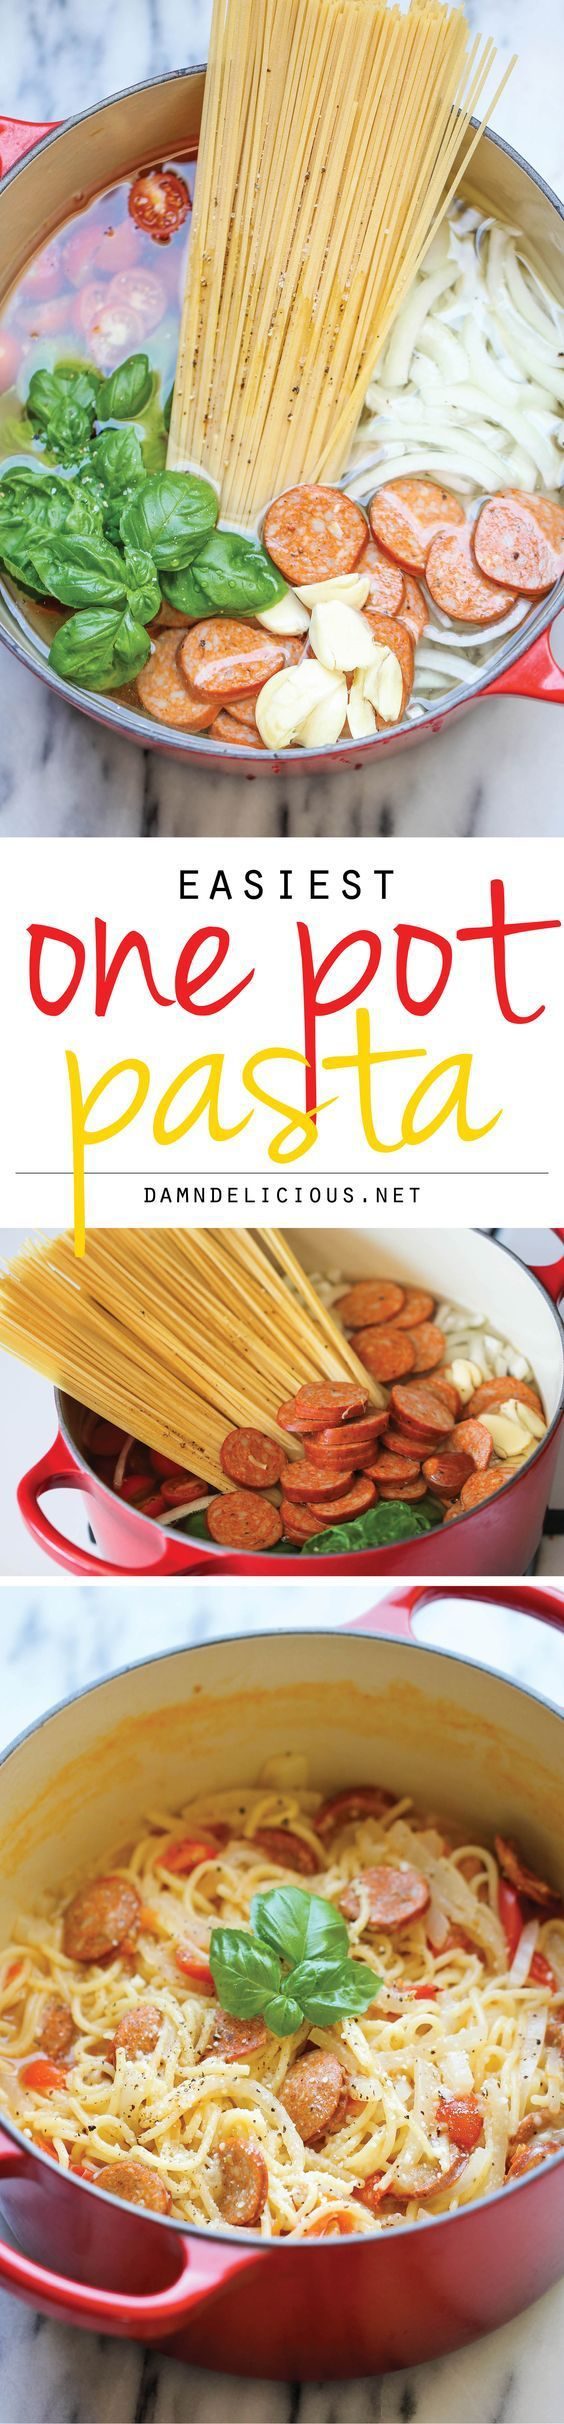 The easiest, most amazing pasta you will ever make. Even the pasta gets cooked right in the pot. How easy is that?! | Damn Delicious - The Best Easy One Pot Pasta Family Dinner Recipes #onepotpasta #onepotmeals #pastarecipes #onepotpastarecipes #onepotrecipes #mealprep #pasta #simplefamilymeals #simplefamilyrecipes #simplerecipes